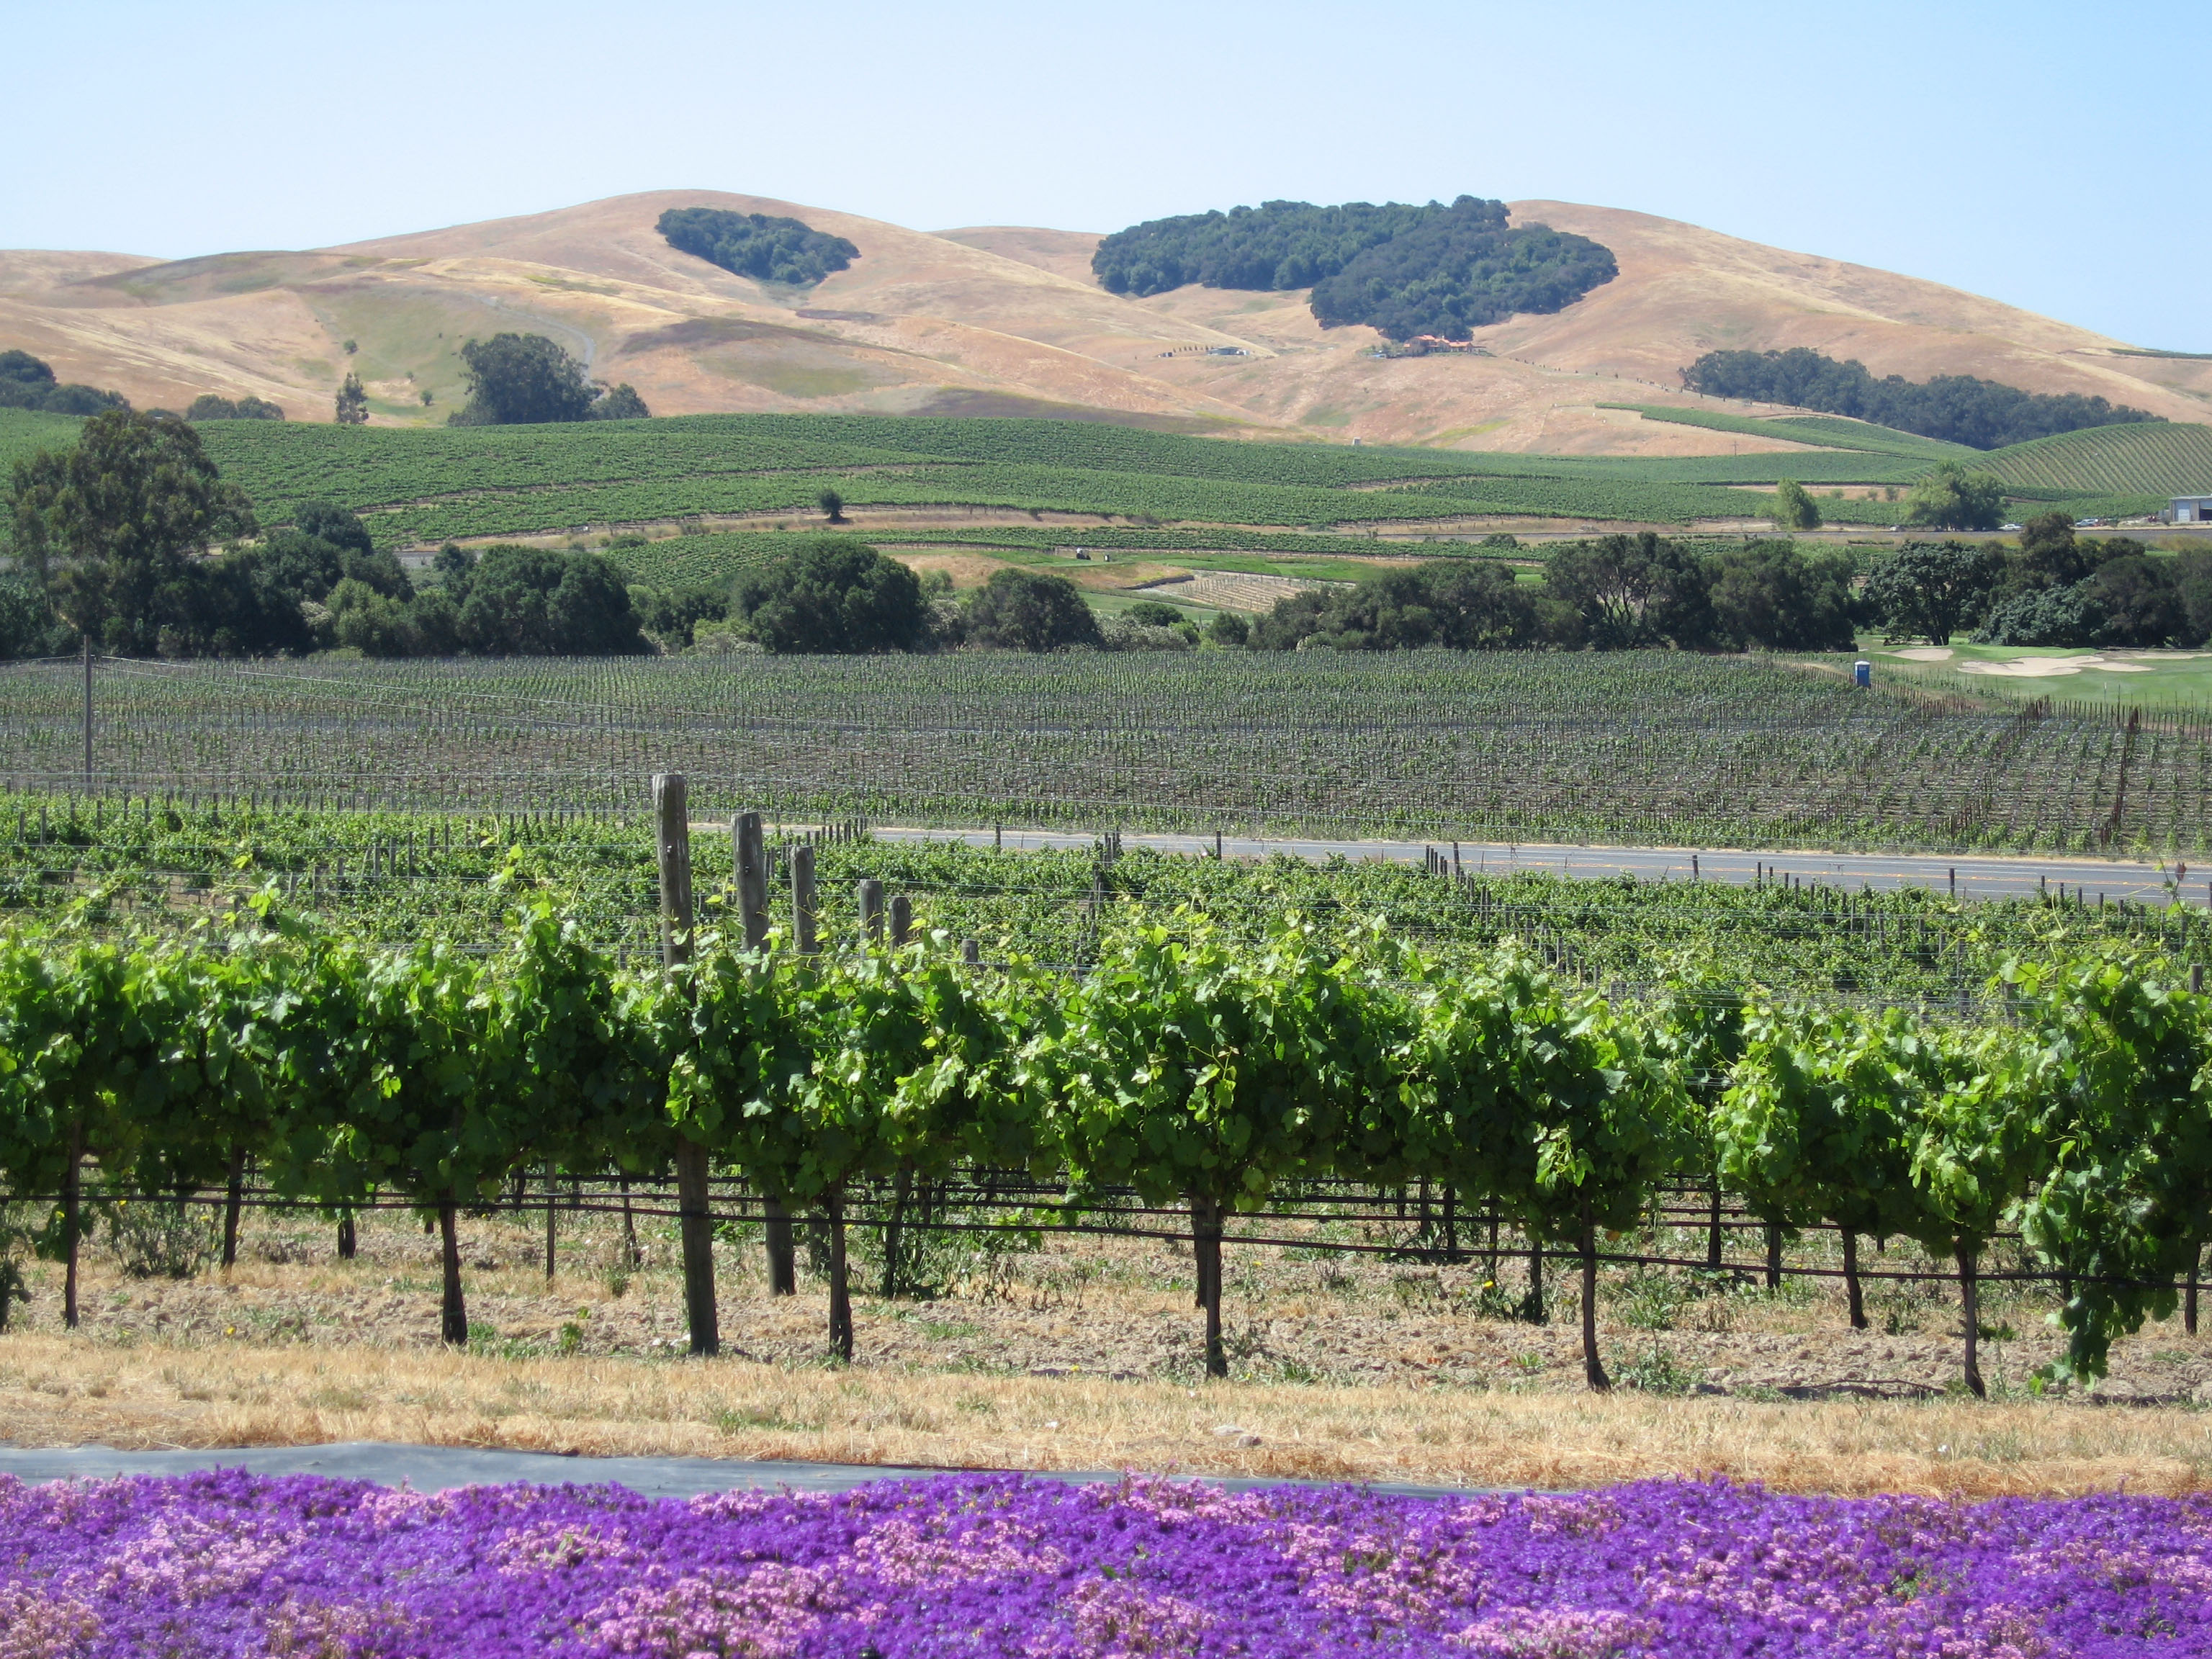 Upcoming Winery and Vineyard Law Seminars and Academic Opportunities